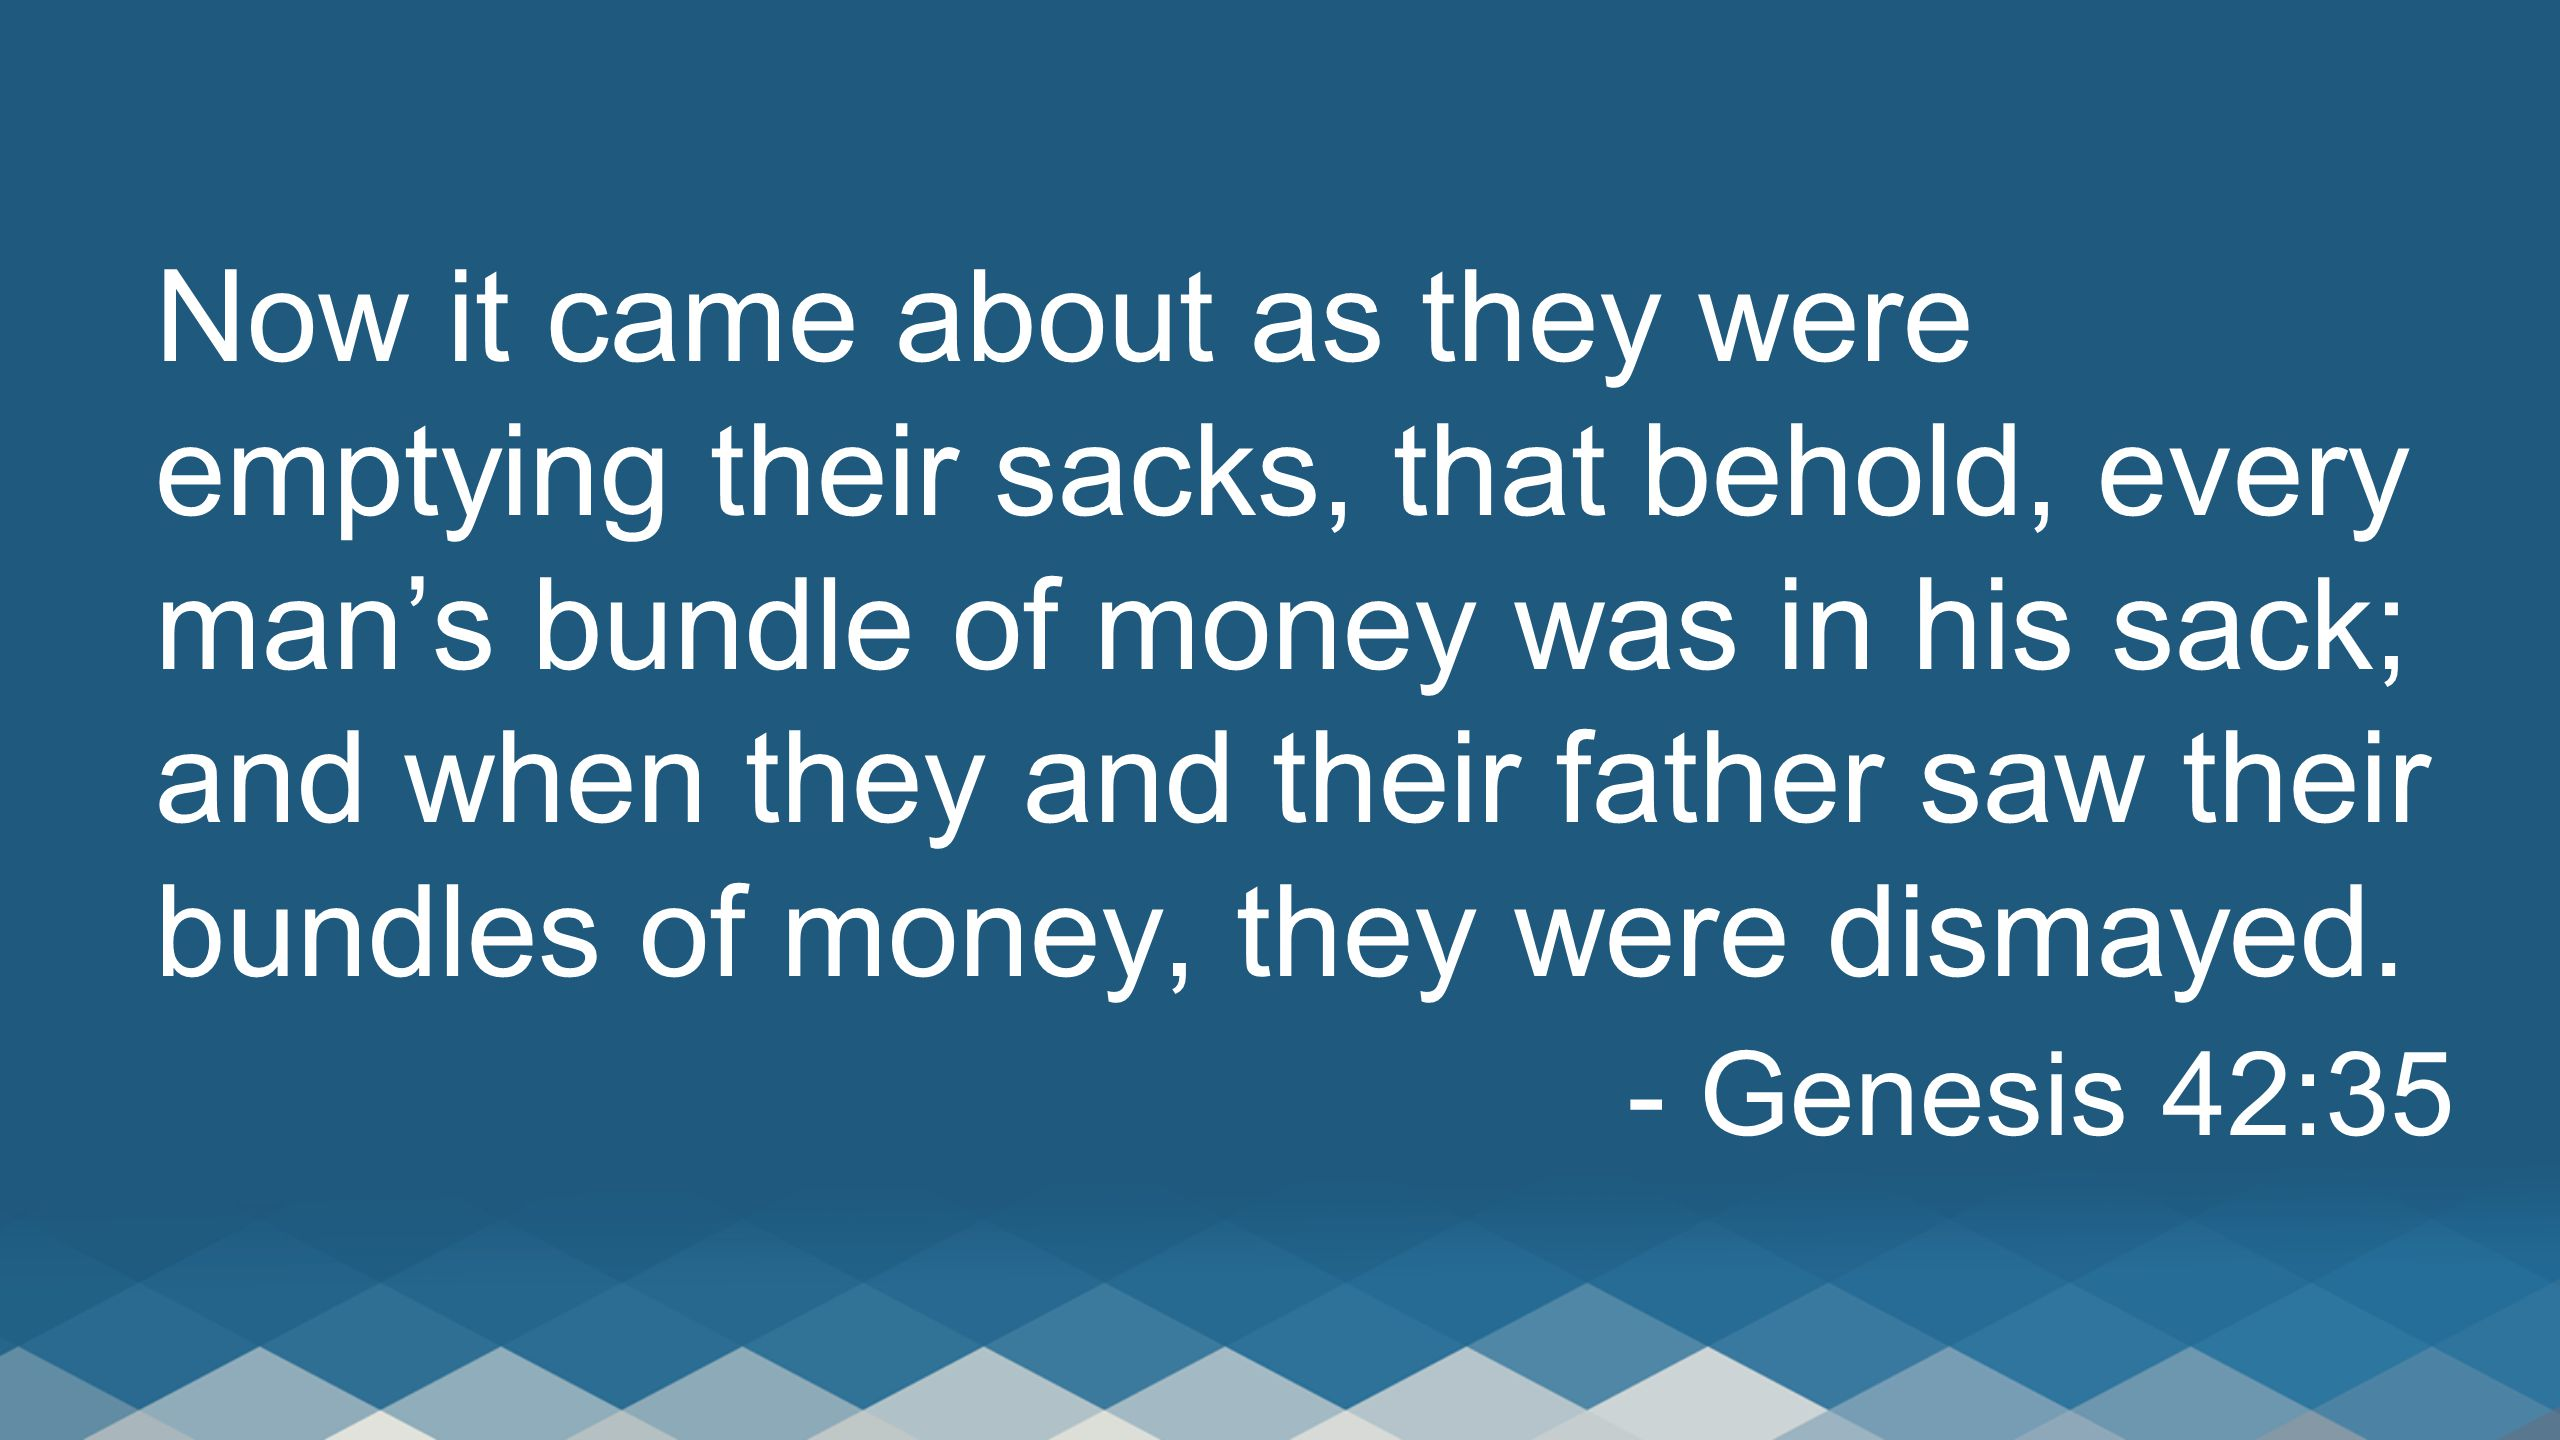 Now it came about as they were emptying their sacks, that behold, every man's bundle of money was in his sack; and when they and their father saw their bundles of money, they were dismayed.